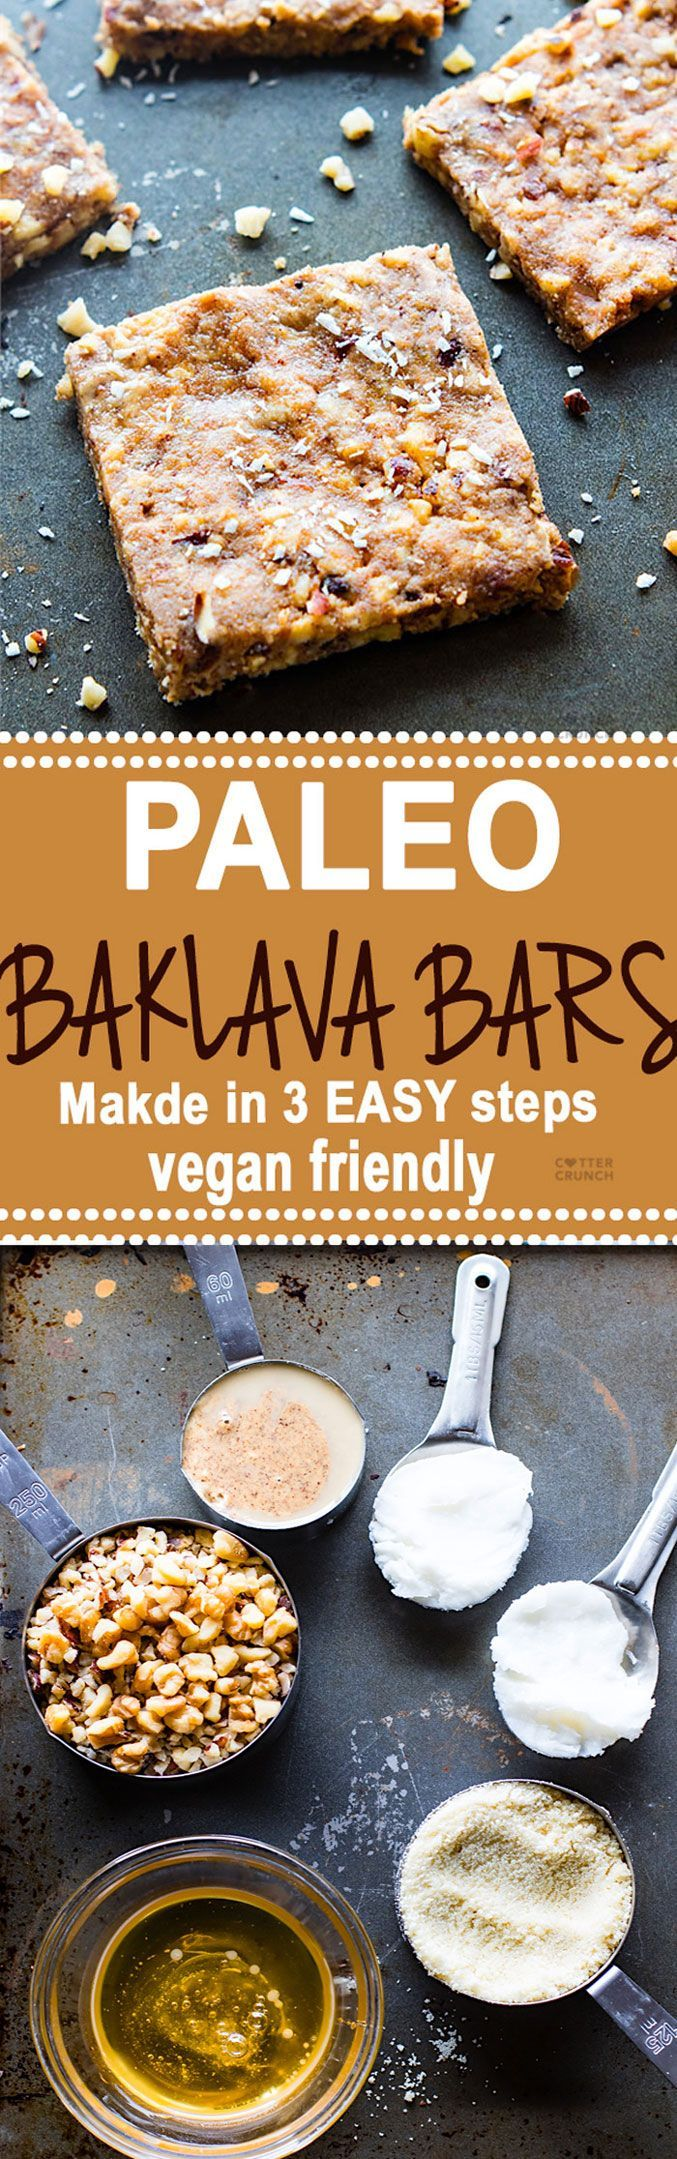 "Super easy 3 Step Paleo ""Baklava"" Bars! healthy vegan friendly bars that are packed full of sweet nutty flavor and healthy fats. Lower in carbs, sugar, and great for snacking. Tastes like dessert but made with simple real food! #paleo #grainfree #glutenfree"